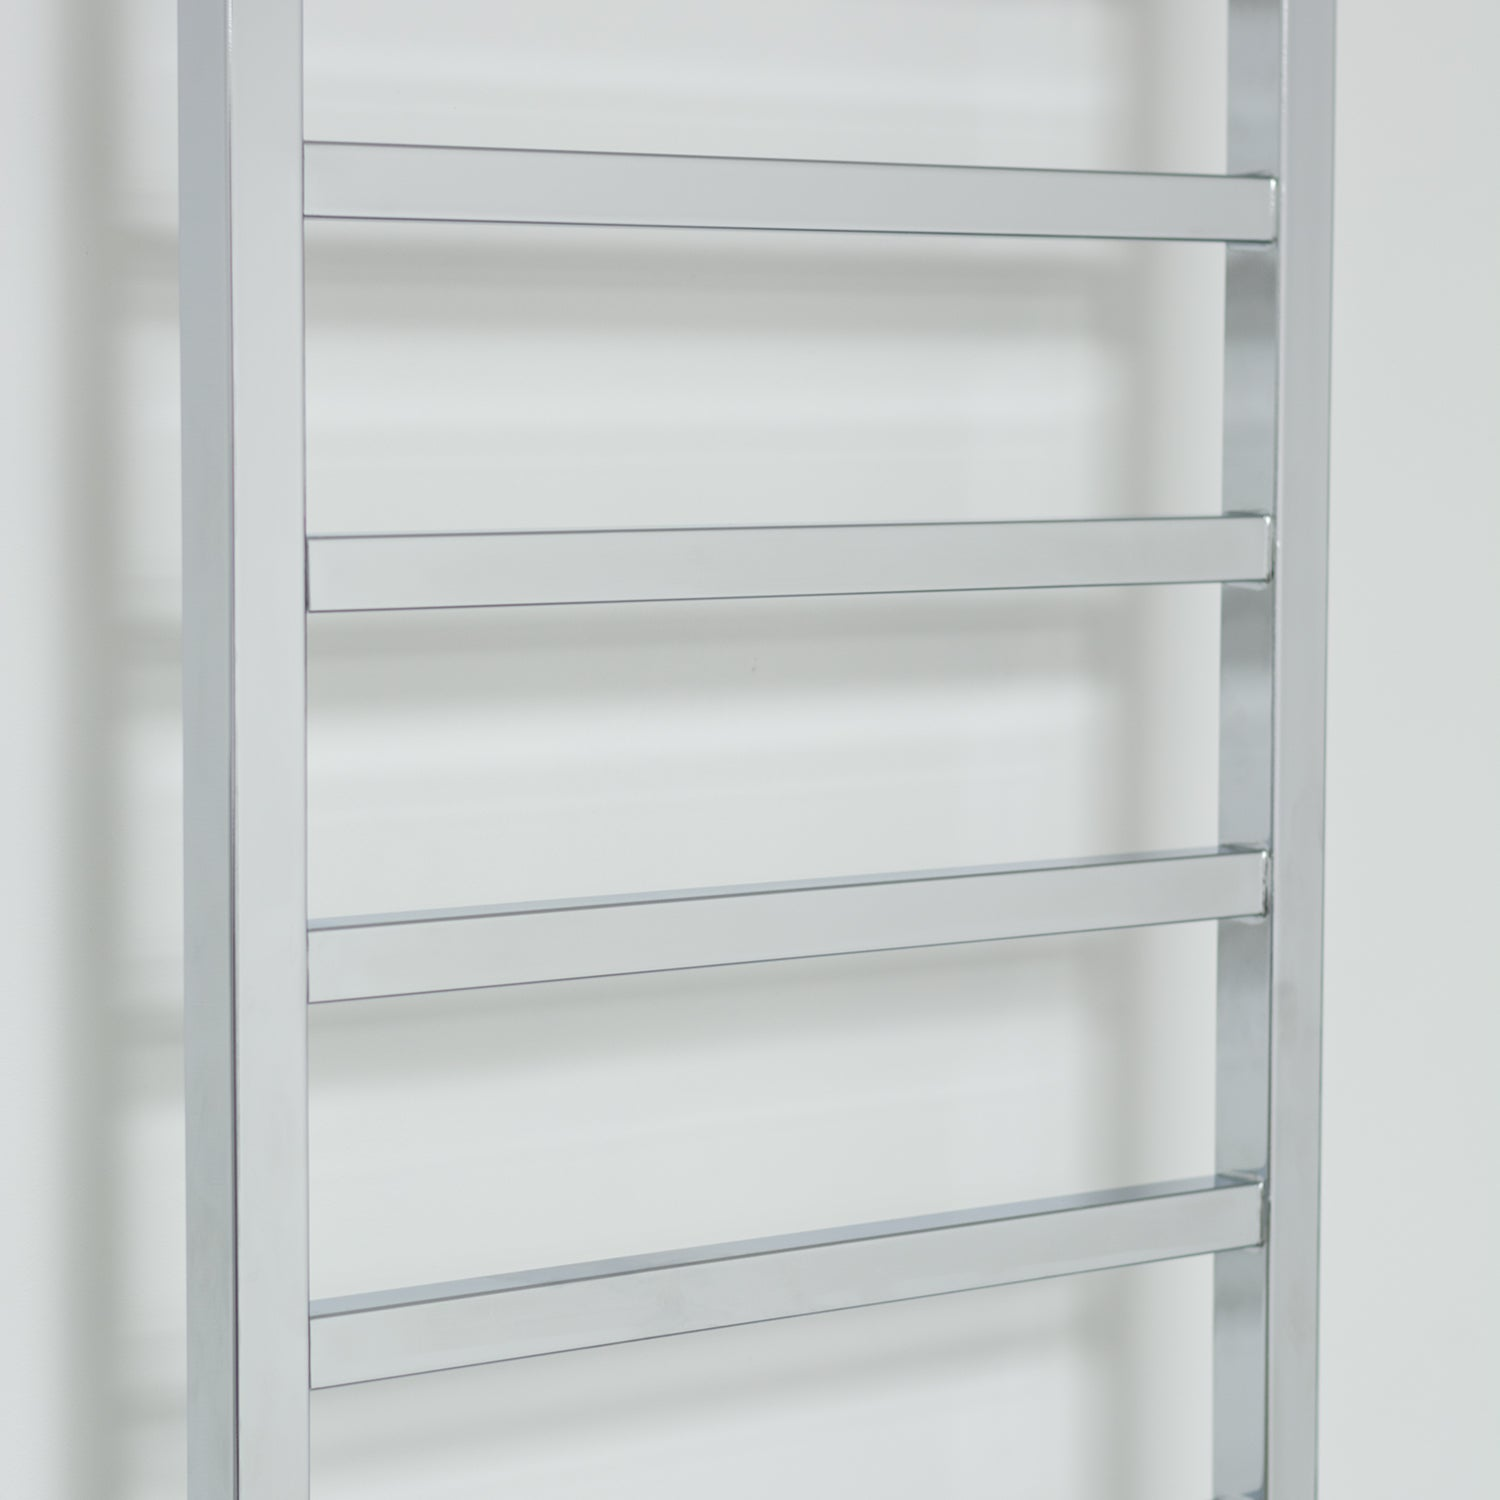 500mm Wide 1700mm High Flat Chrome Square Tube Heated Towel Rail Radiator